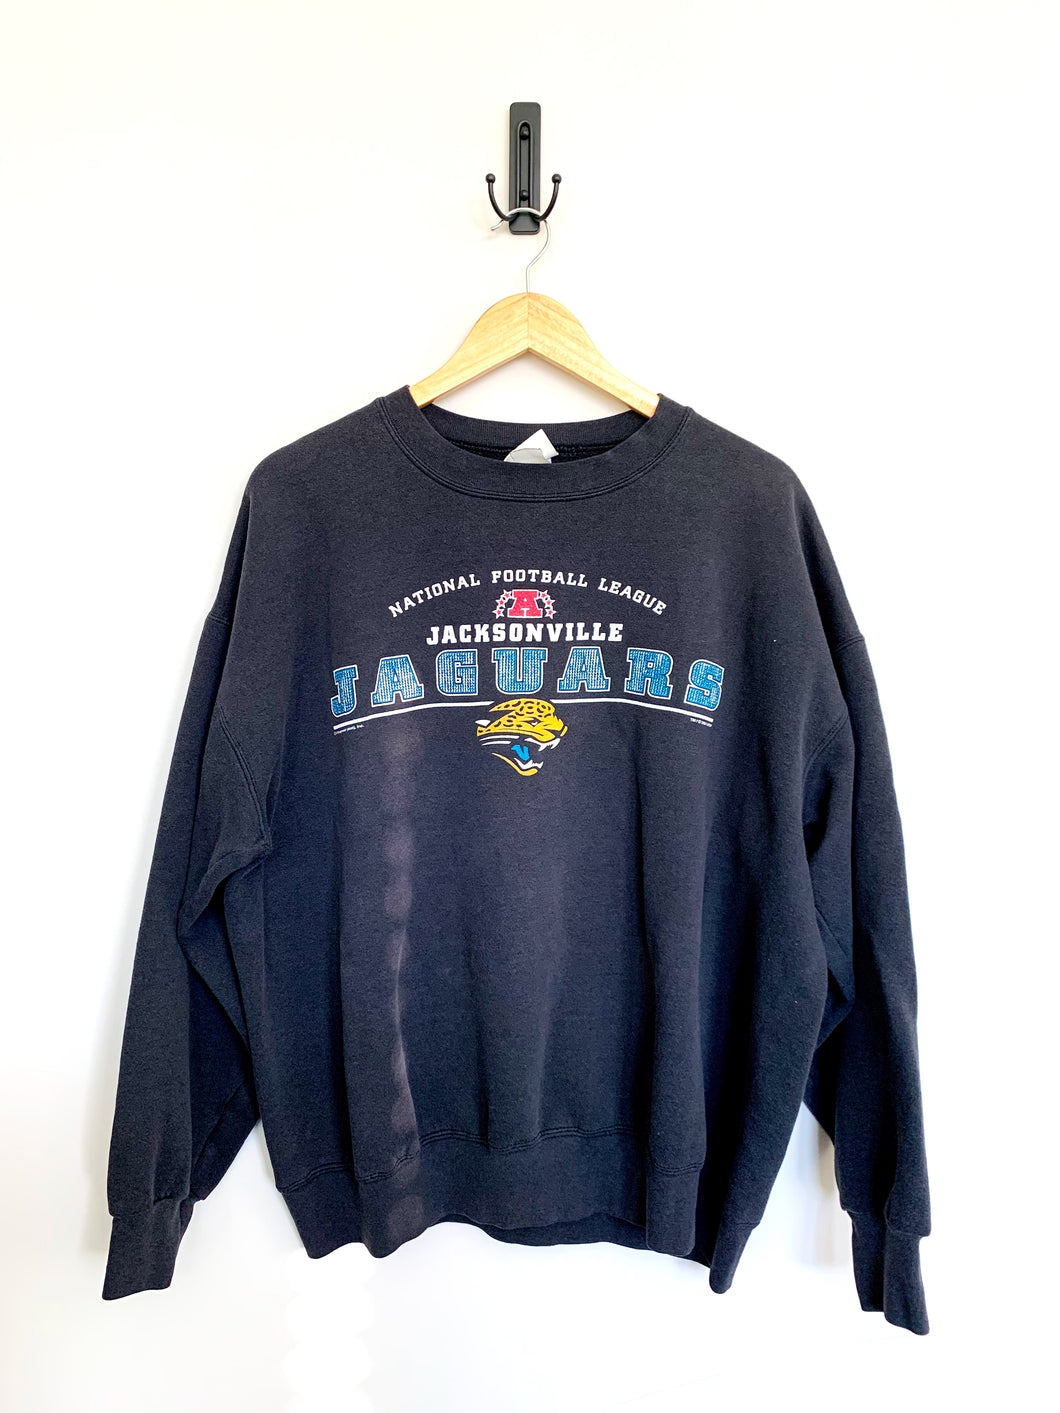 Jags Vintage Black Sweater